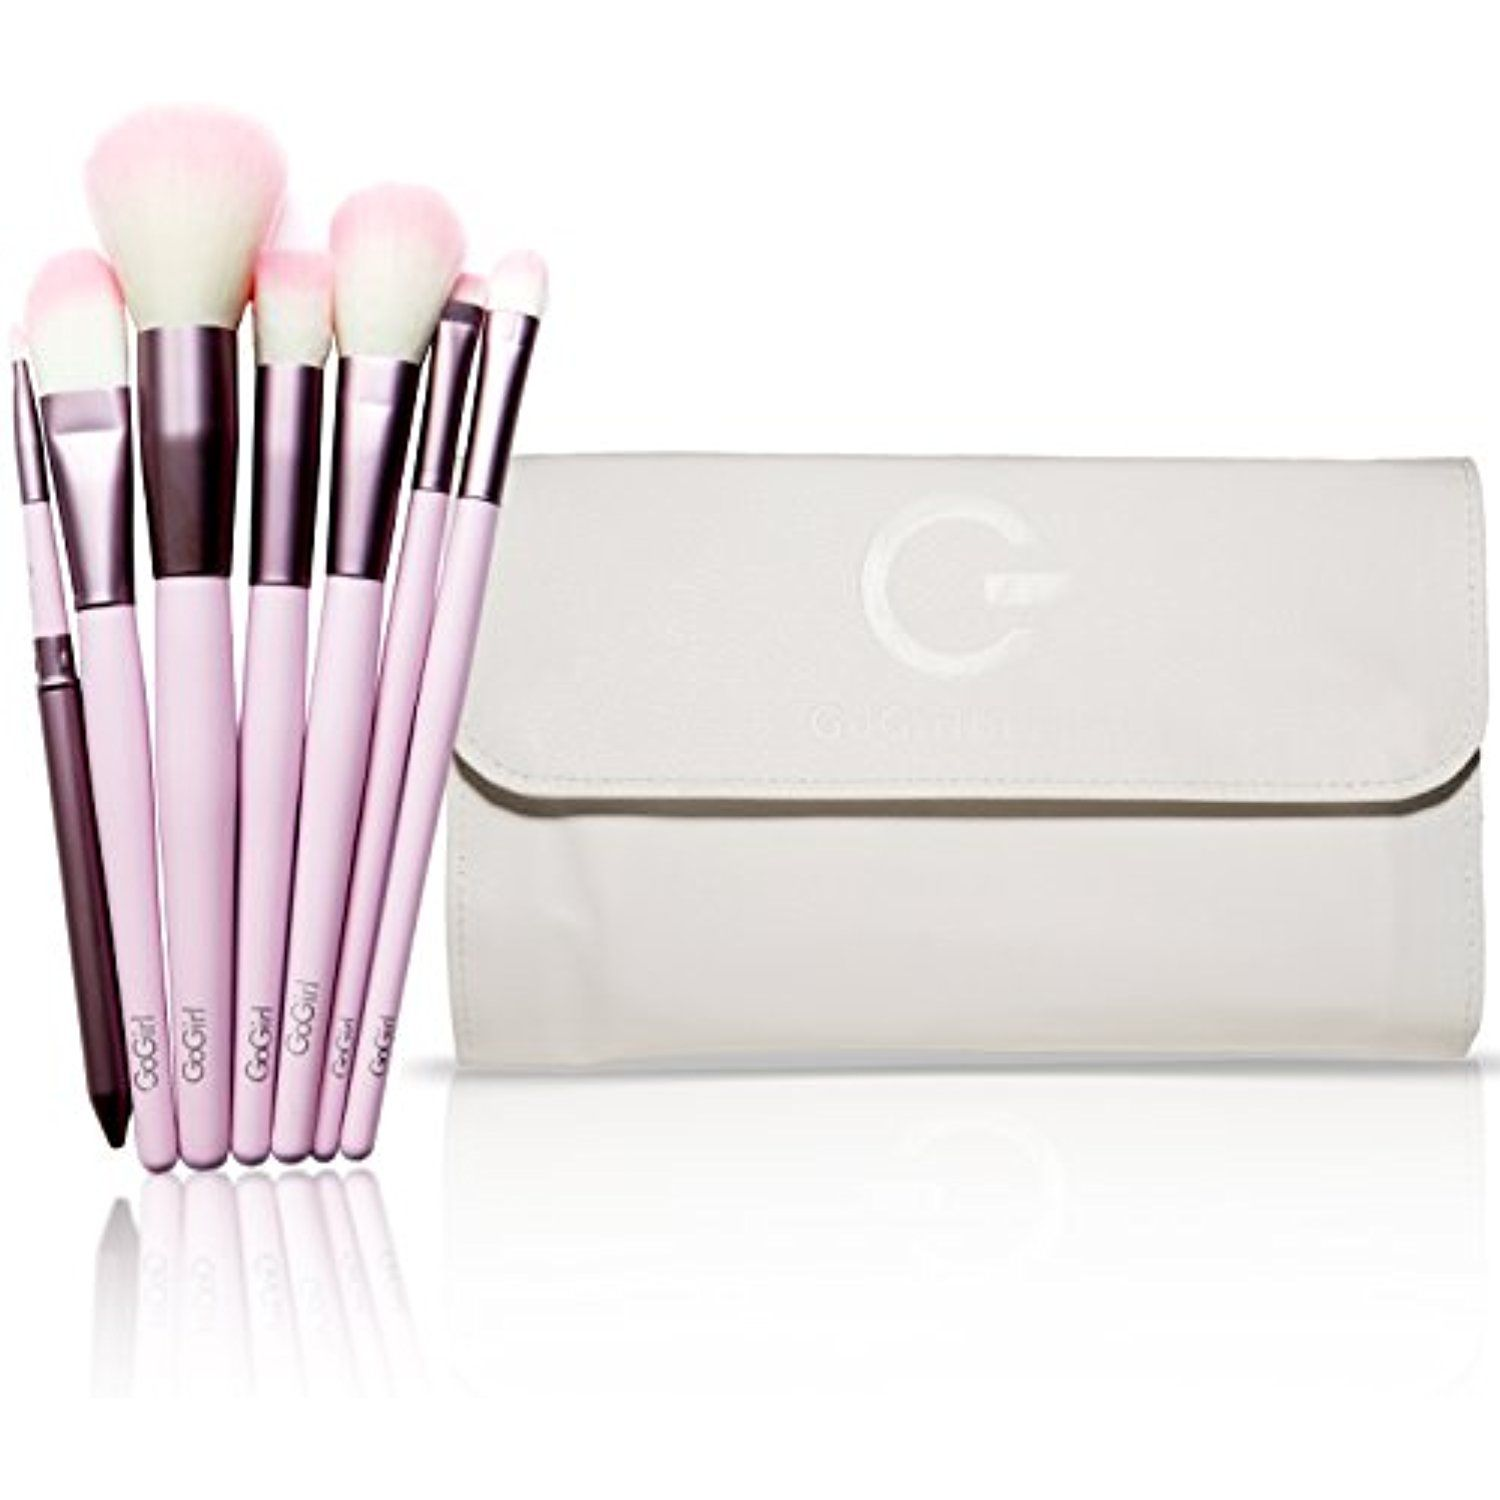 Gg Beauty Premium Synthetic Makeup Brush Set 20 Piece Cosmetics Kit With White Pouch